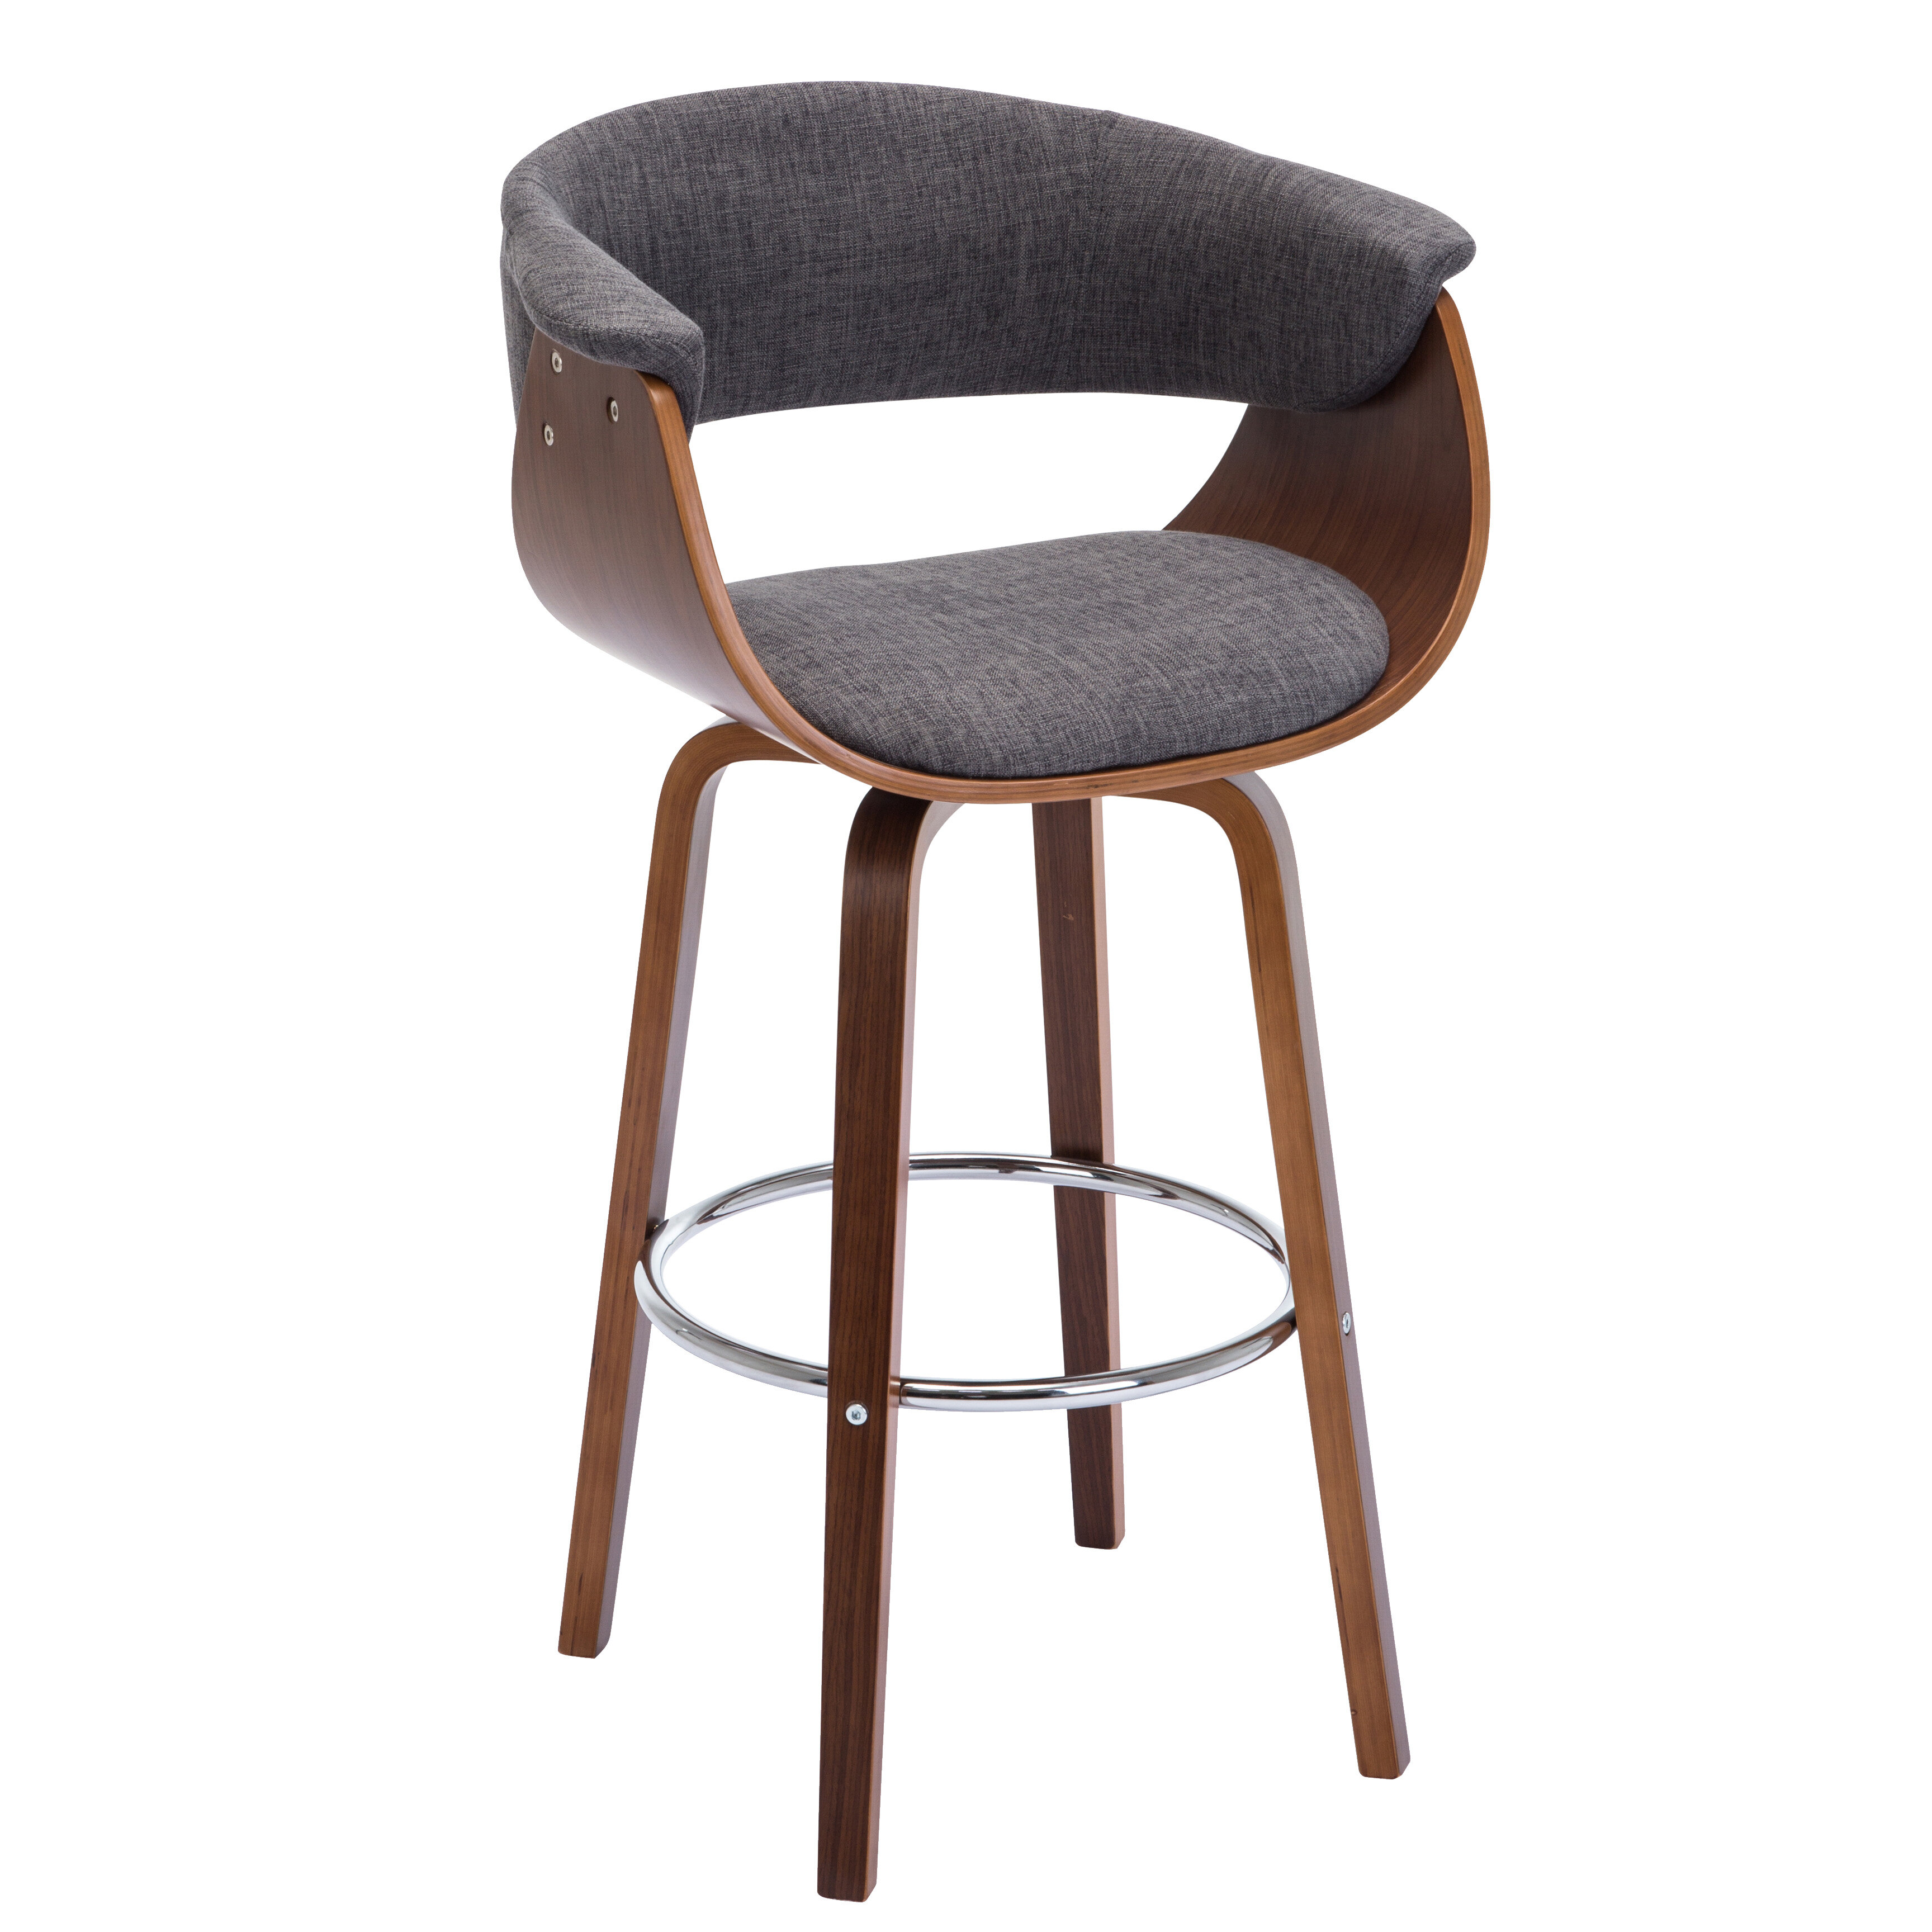 Marvelous Salvador 28 5 Swivel Counter Stool Unemploymentrelief Wooden Chair Designs For Living Room Unemploymentrelieforg